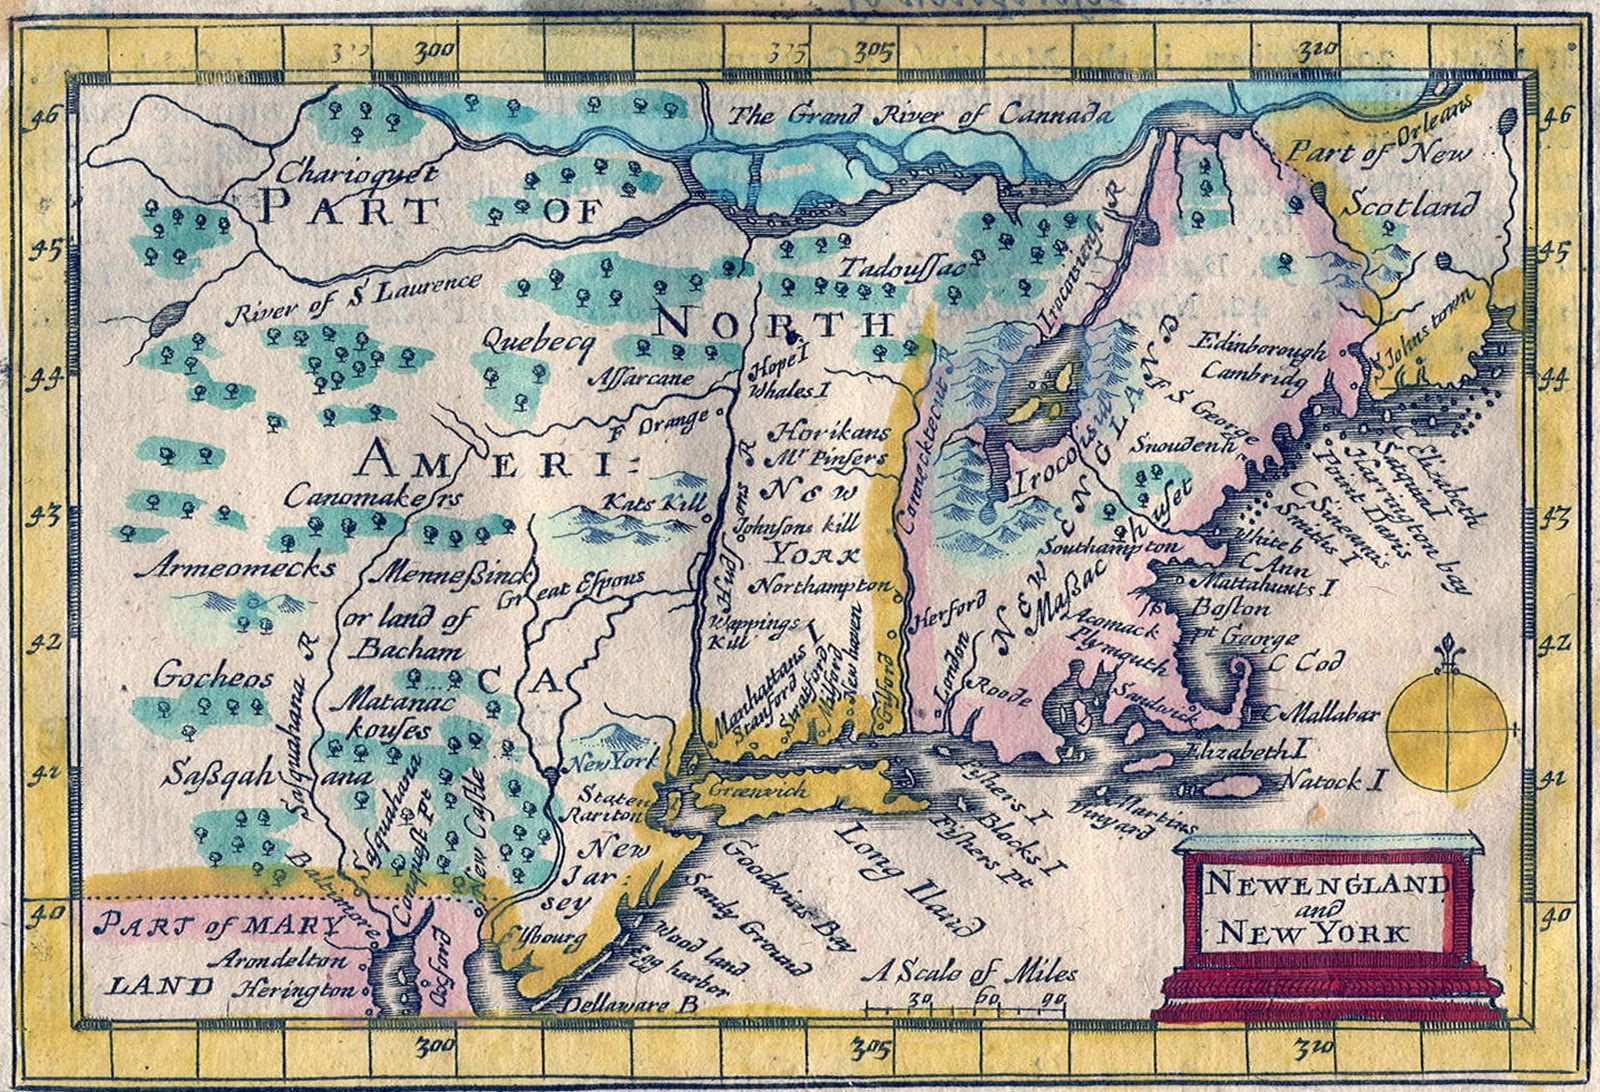 1675 map by john speed in a prospect of the most famous parts of the world notes the location of the minnisink